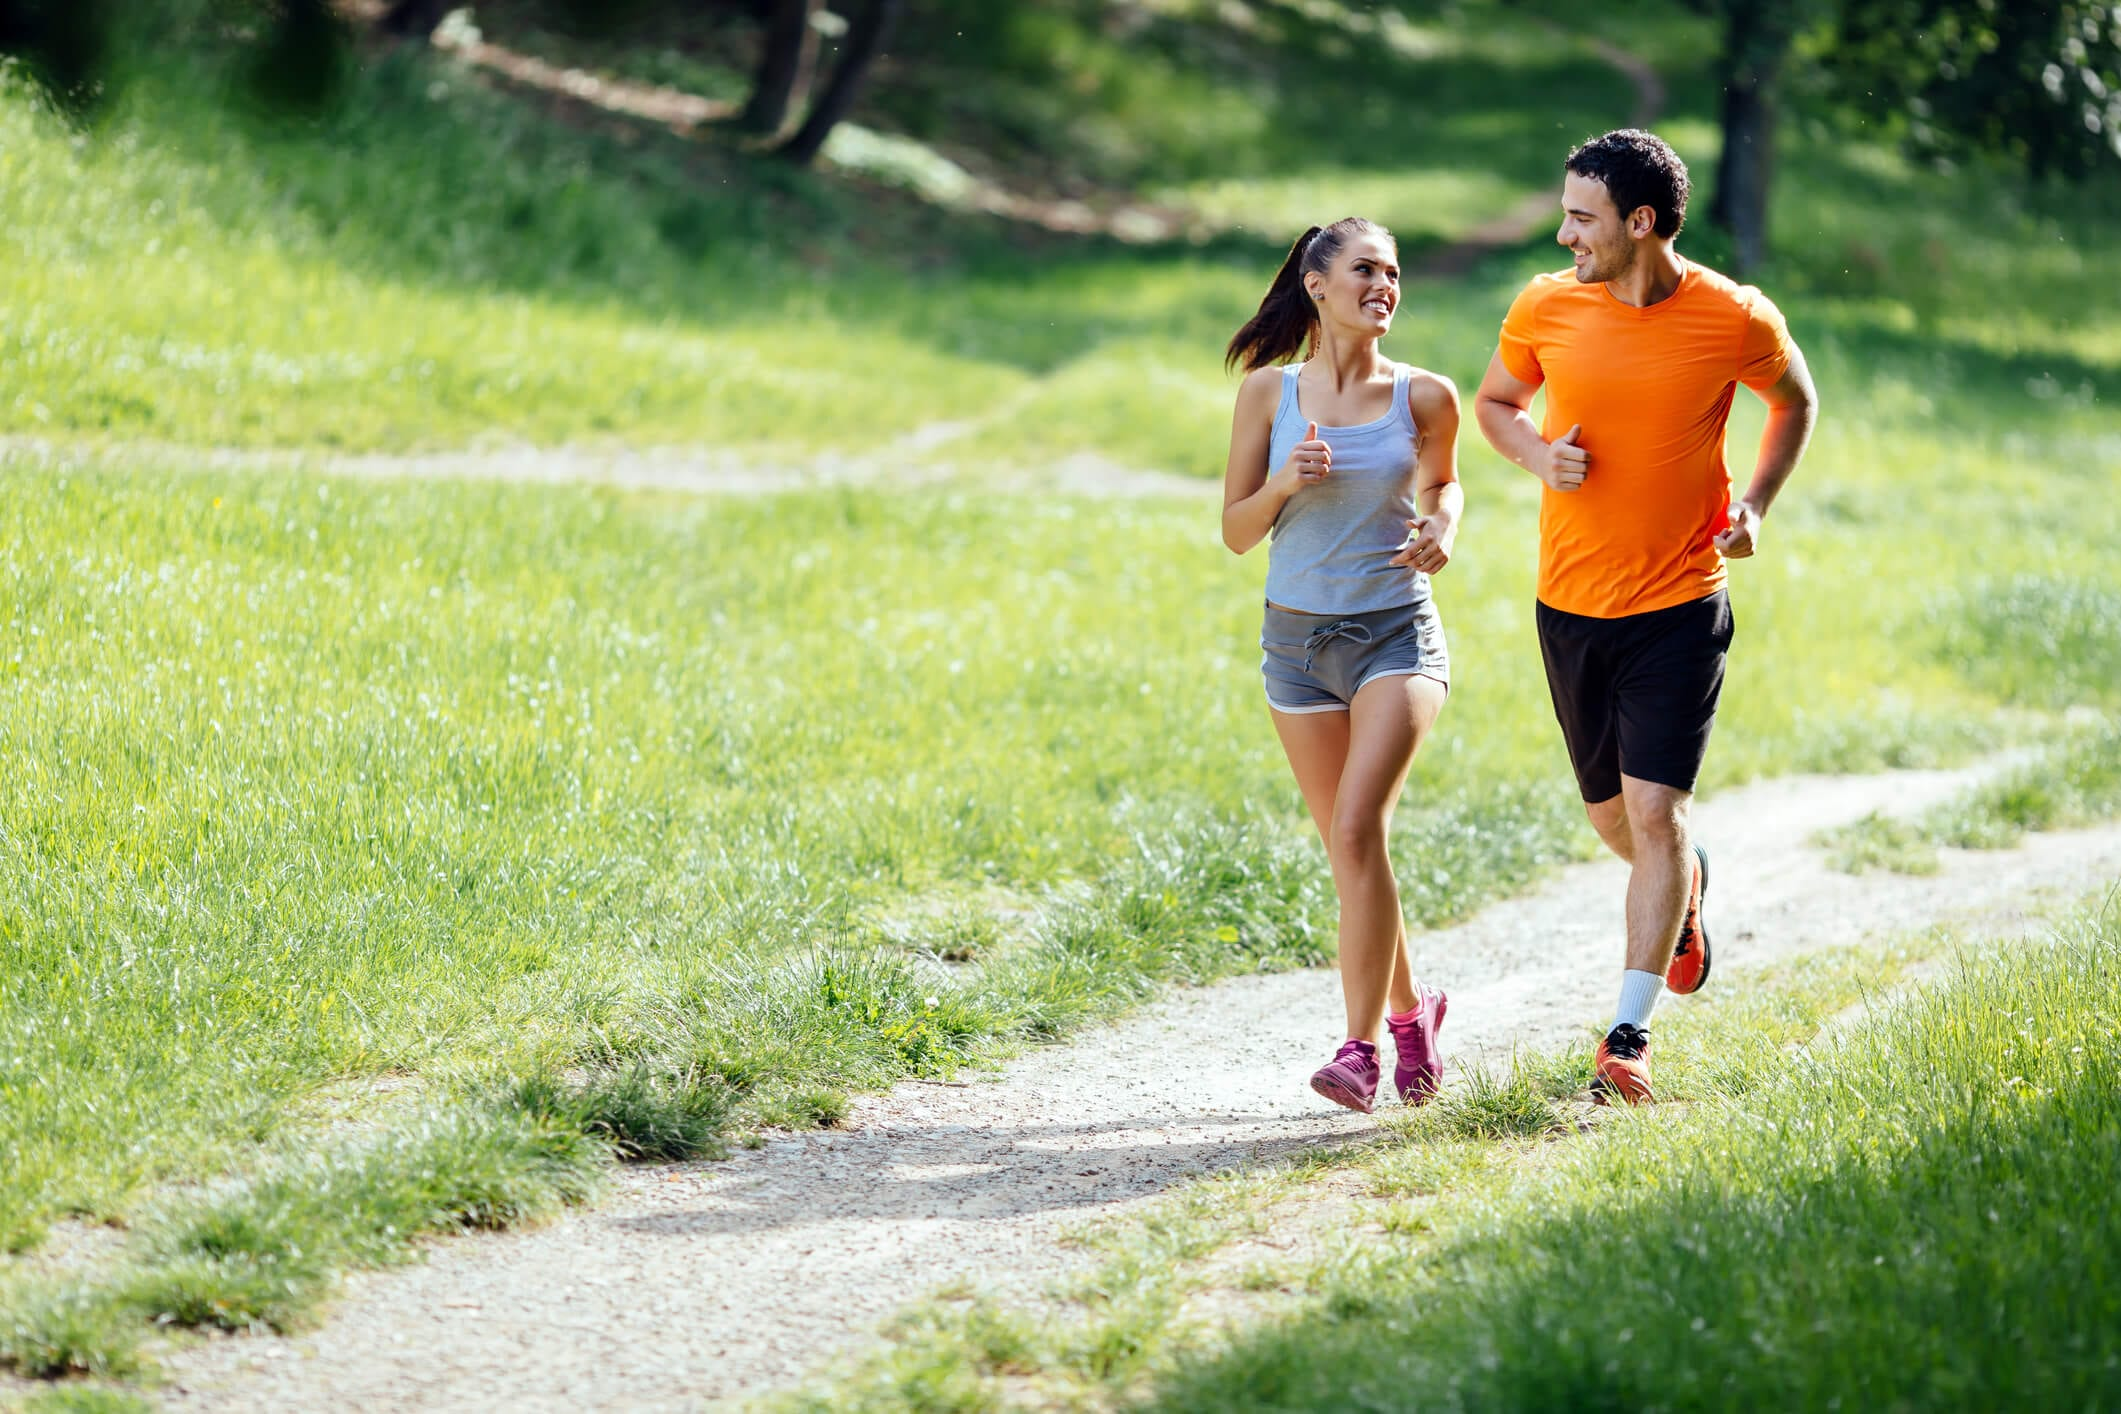 Beautiful couple jogging in nature.